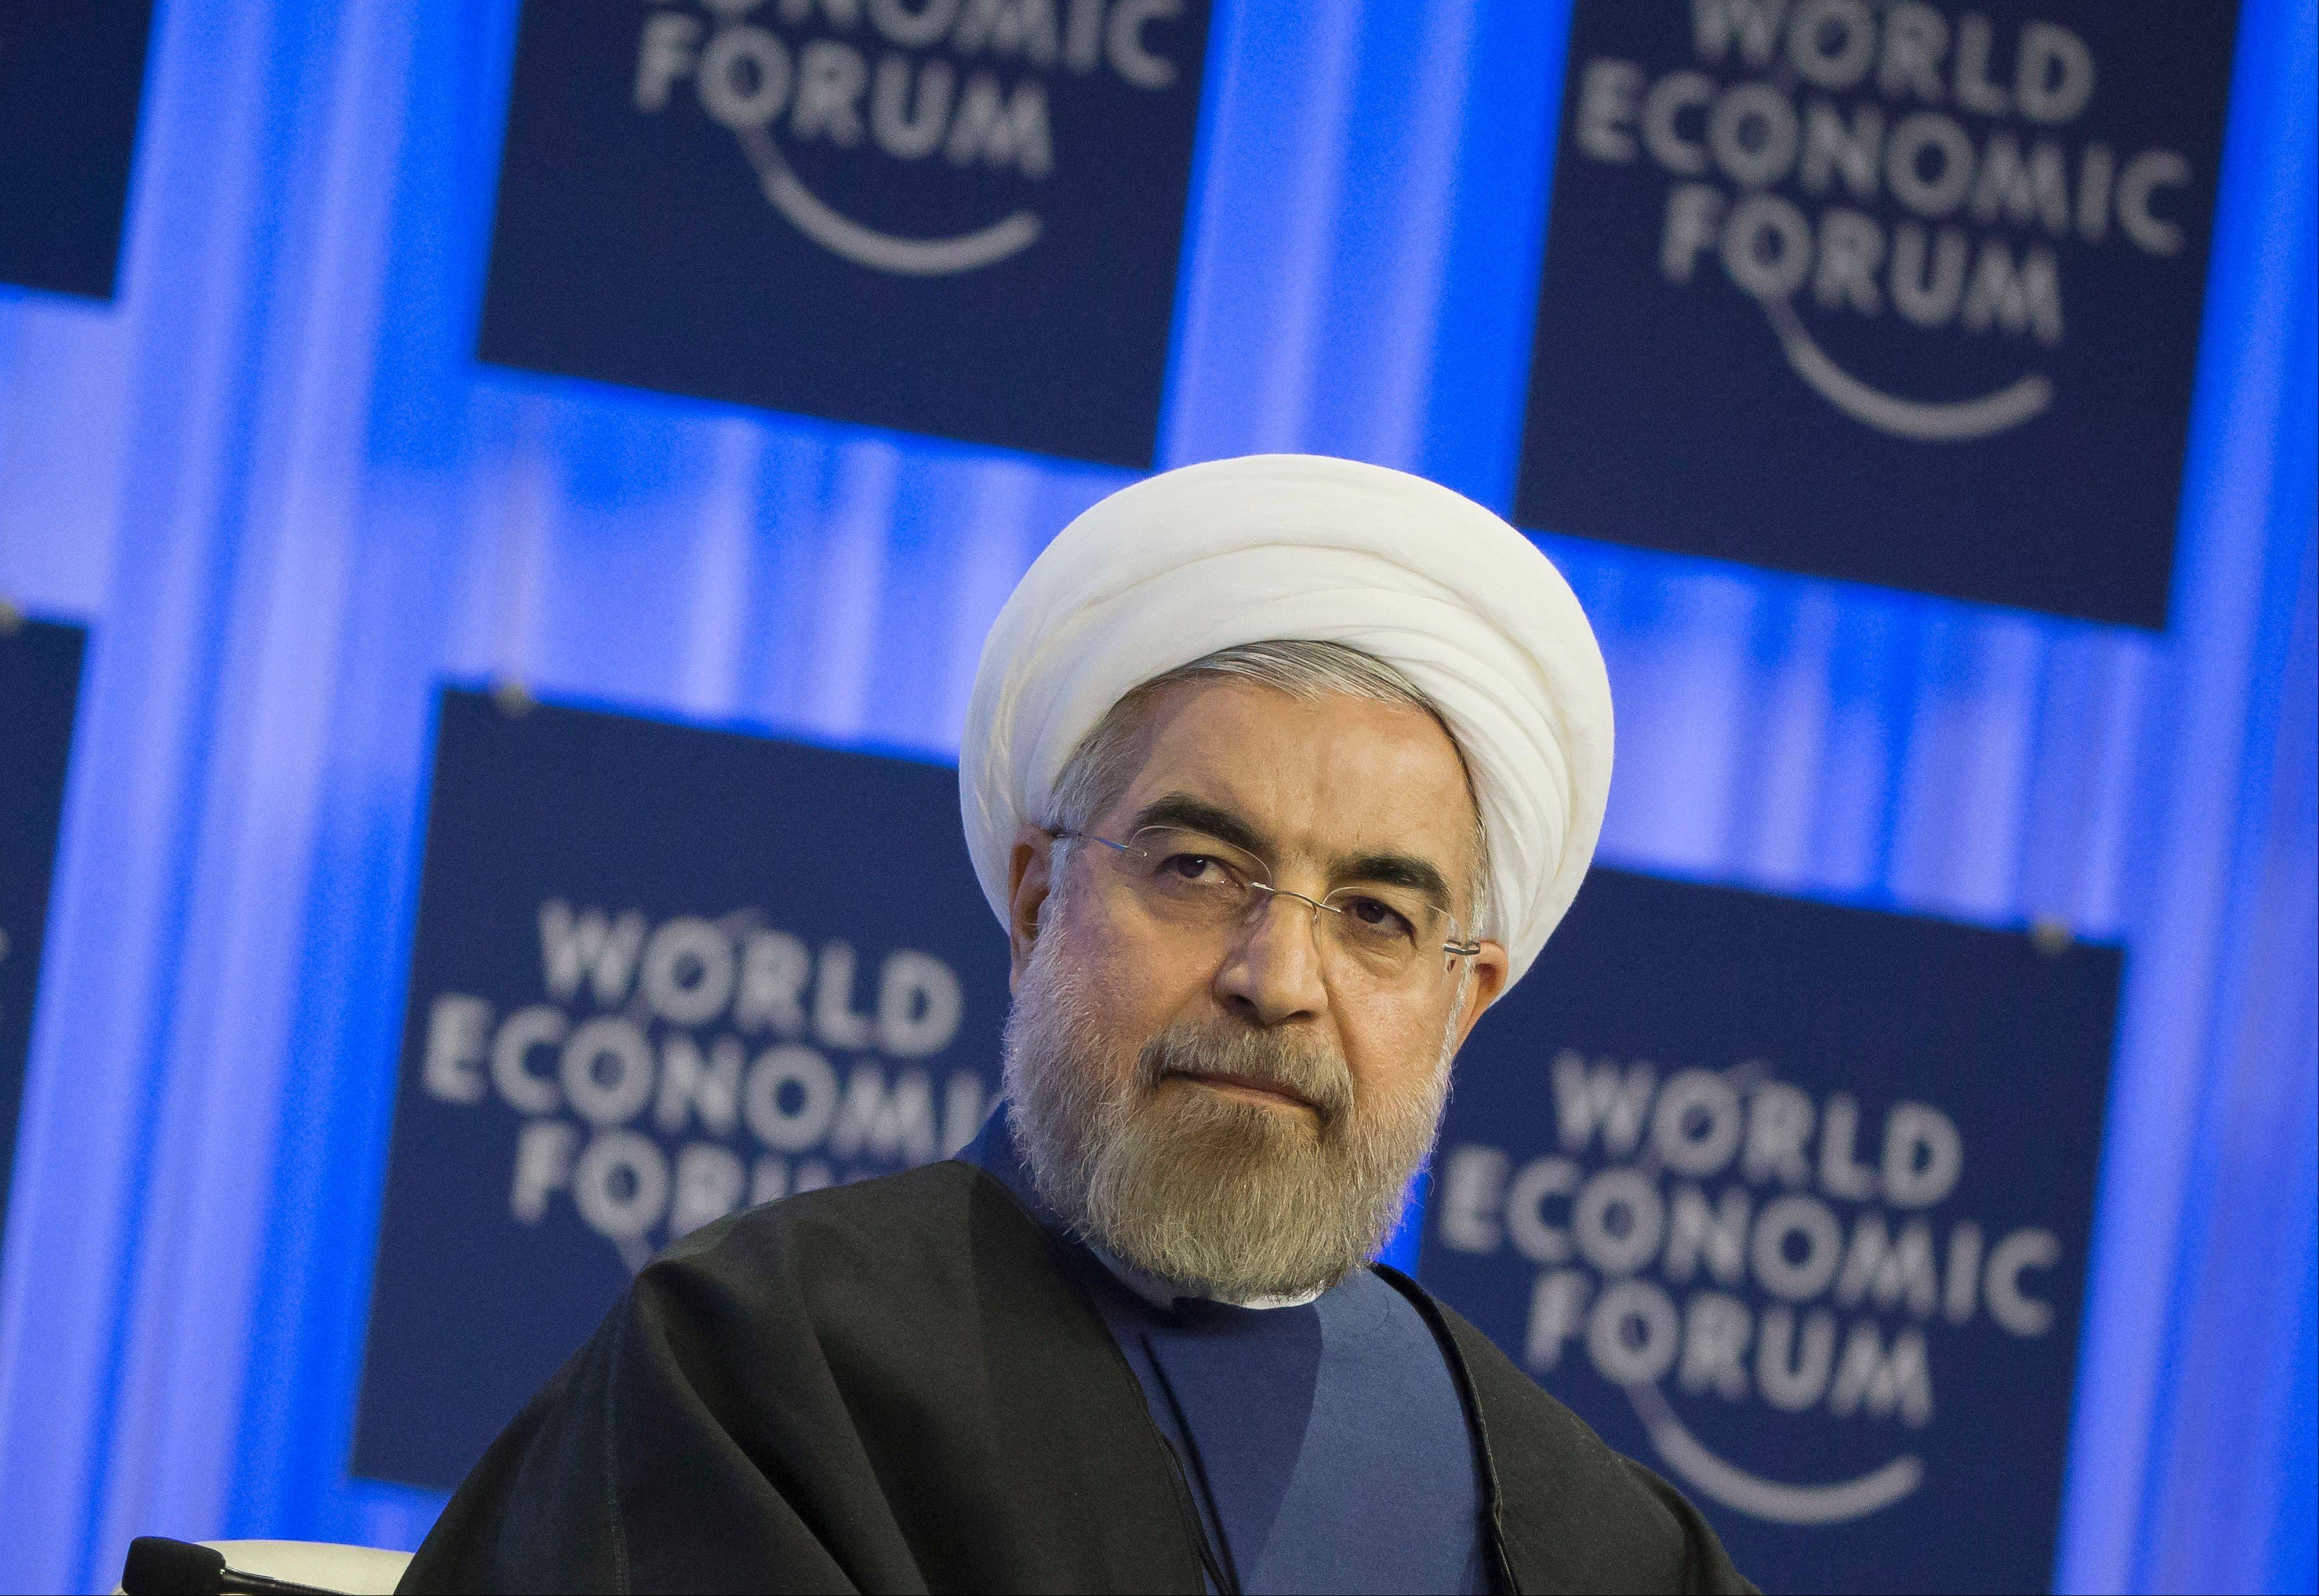 Iranian President Hassan Rouhani listens to welcome remarks during a session of the World Economic Forum in Davos, Switzerland, Thursday, Jan. 23, 2014.